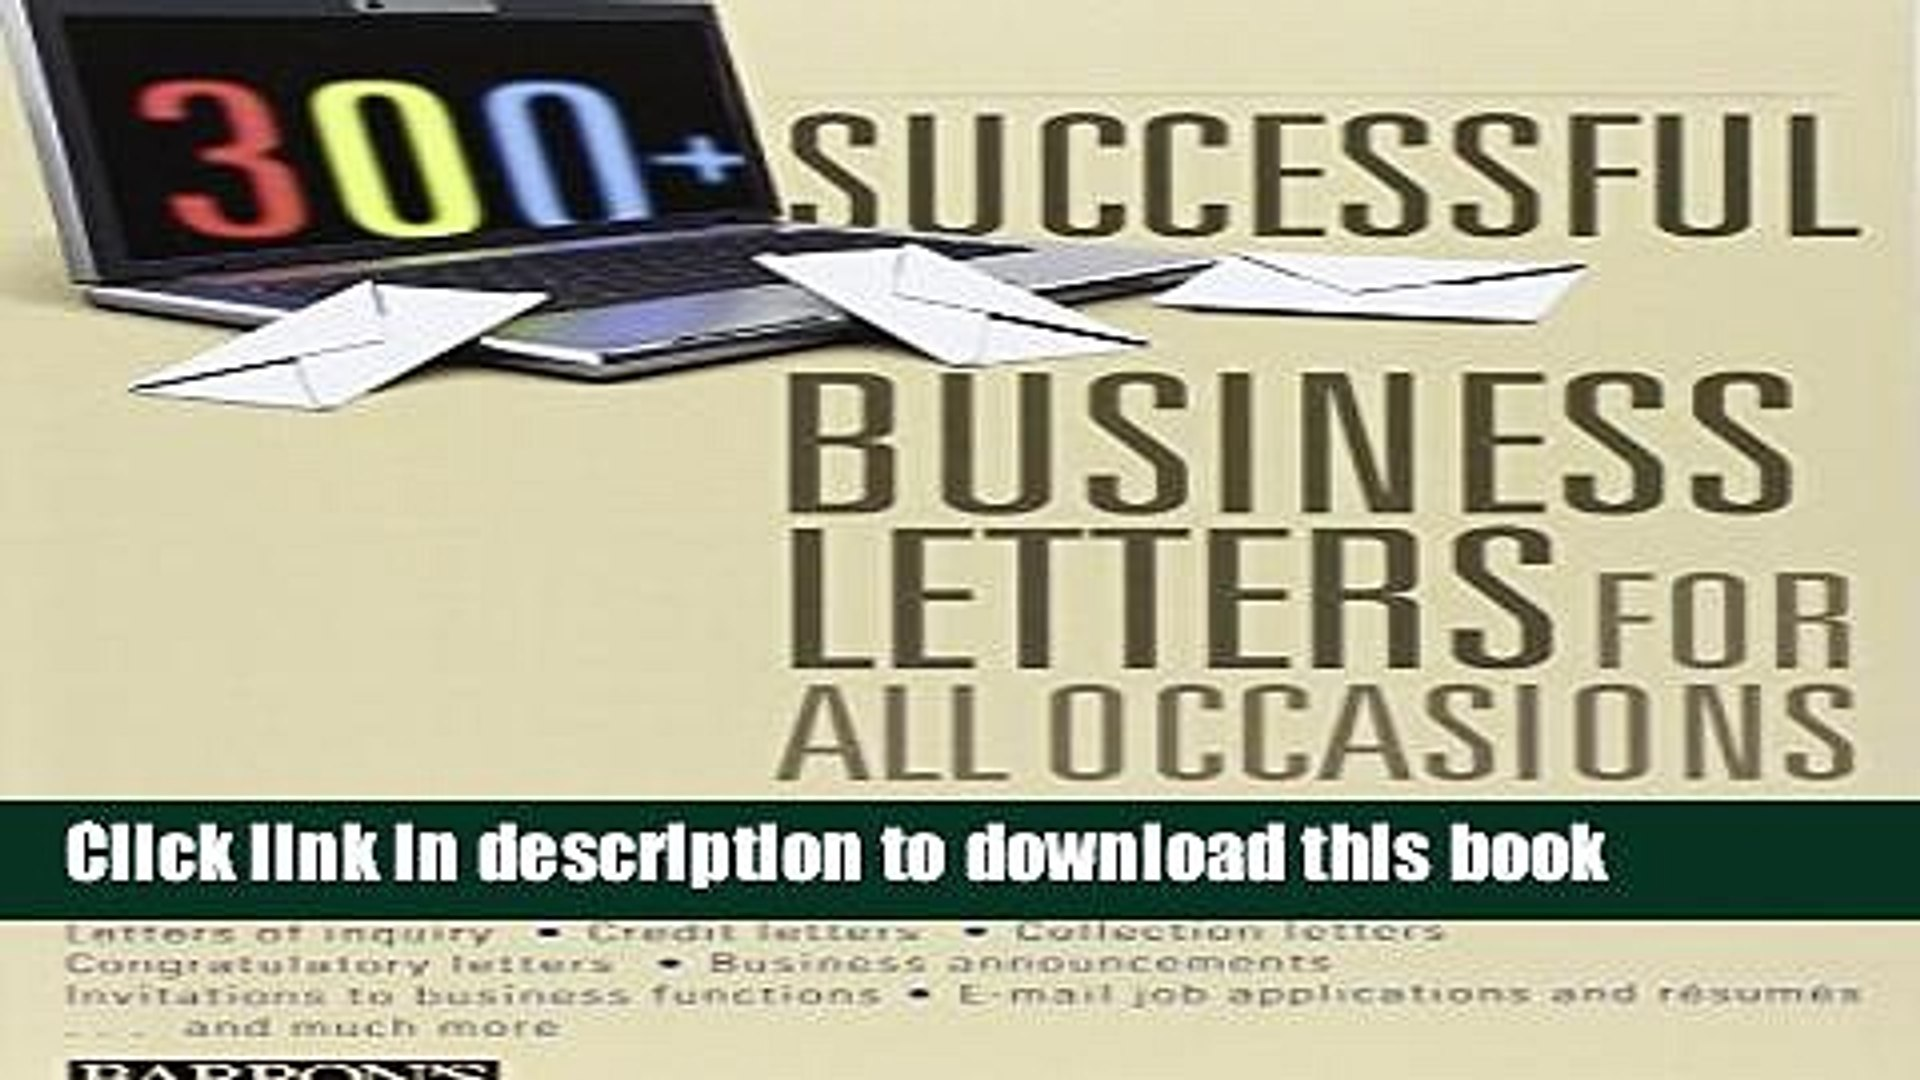 300 Successful Business Letters for All Occasions